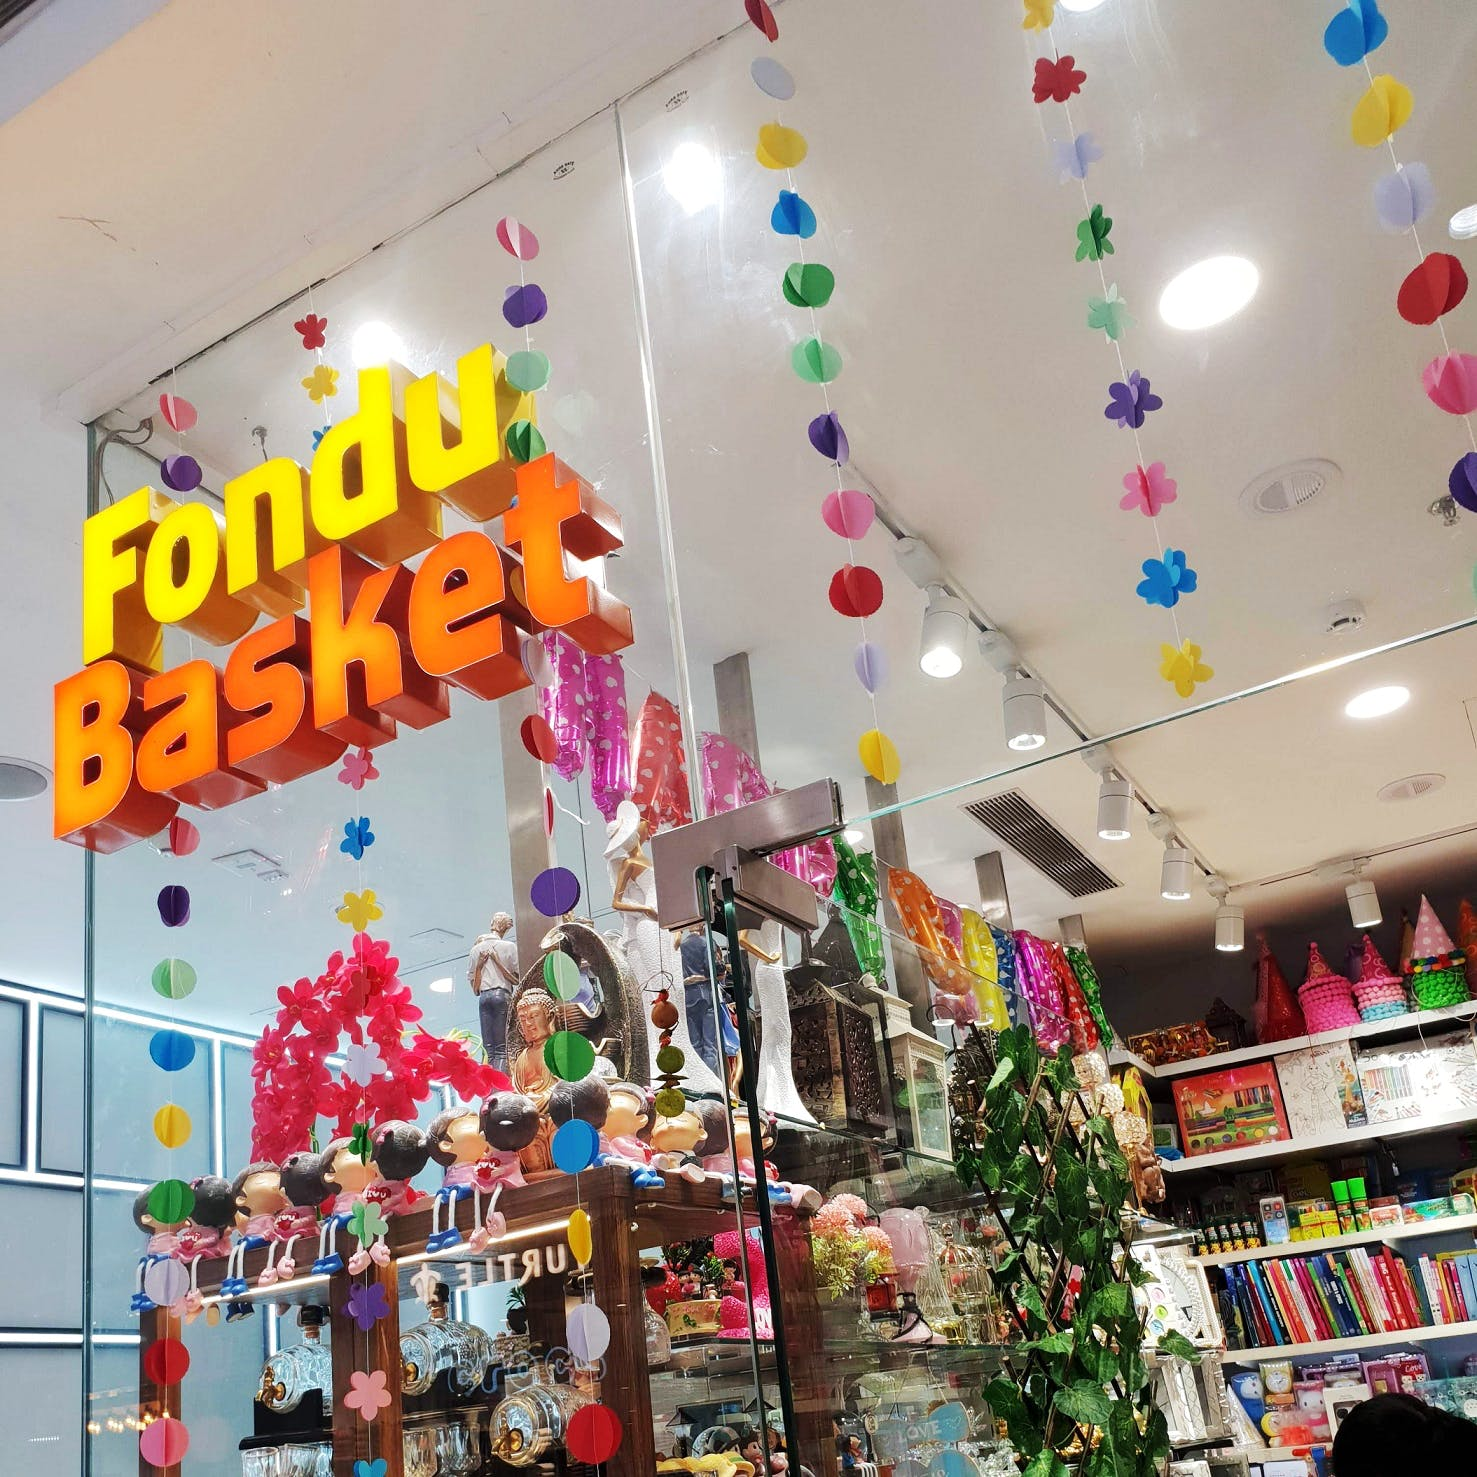 Building,Outlet store,Interior design,Supermarket,Ceiling,Shopping mall,Retail,Interior design,Toy,Convenience store